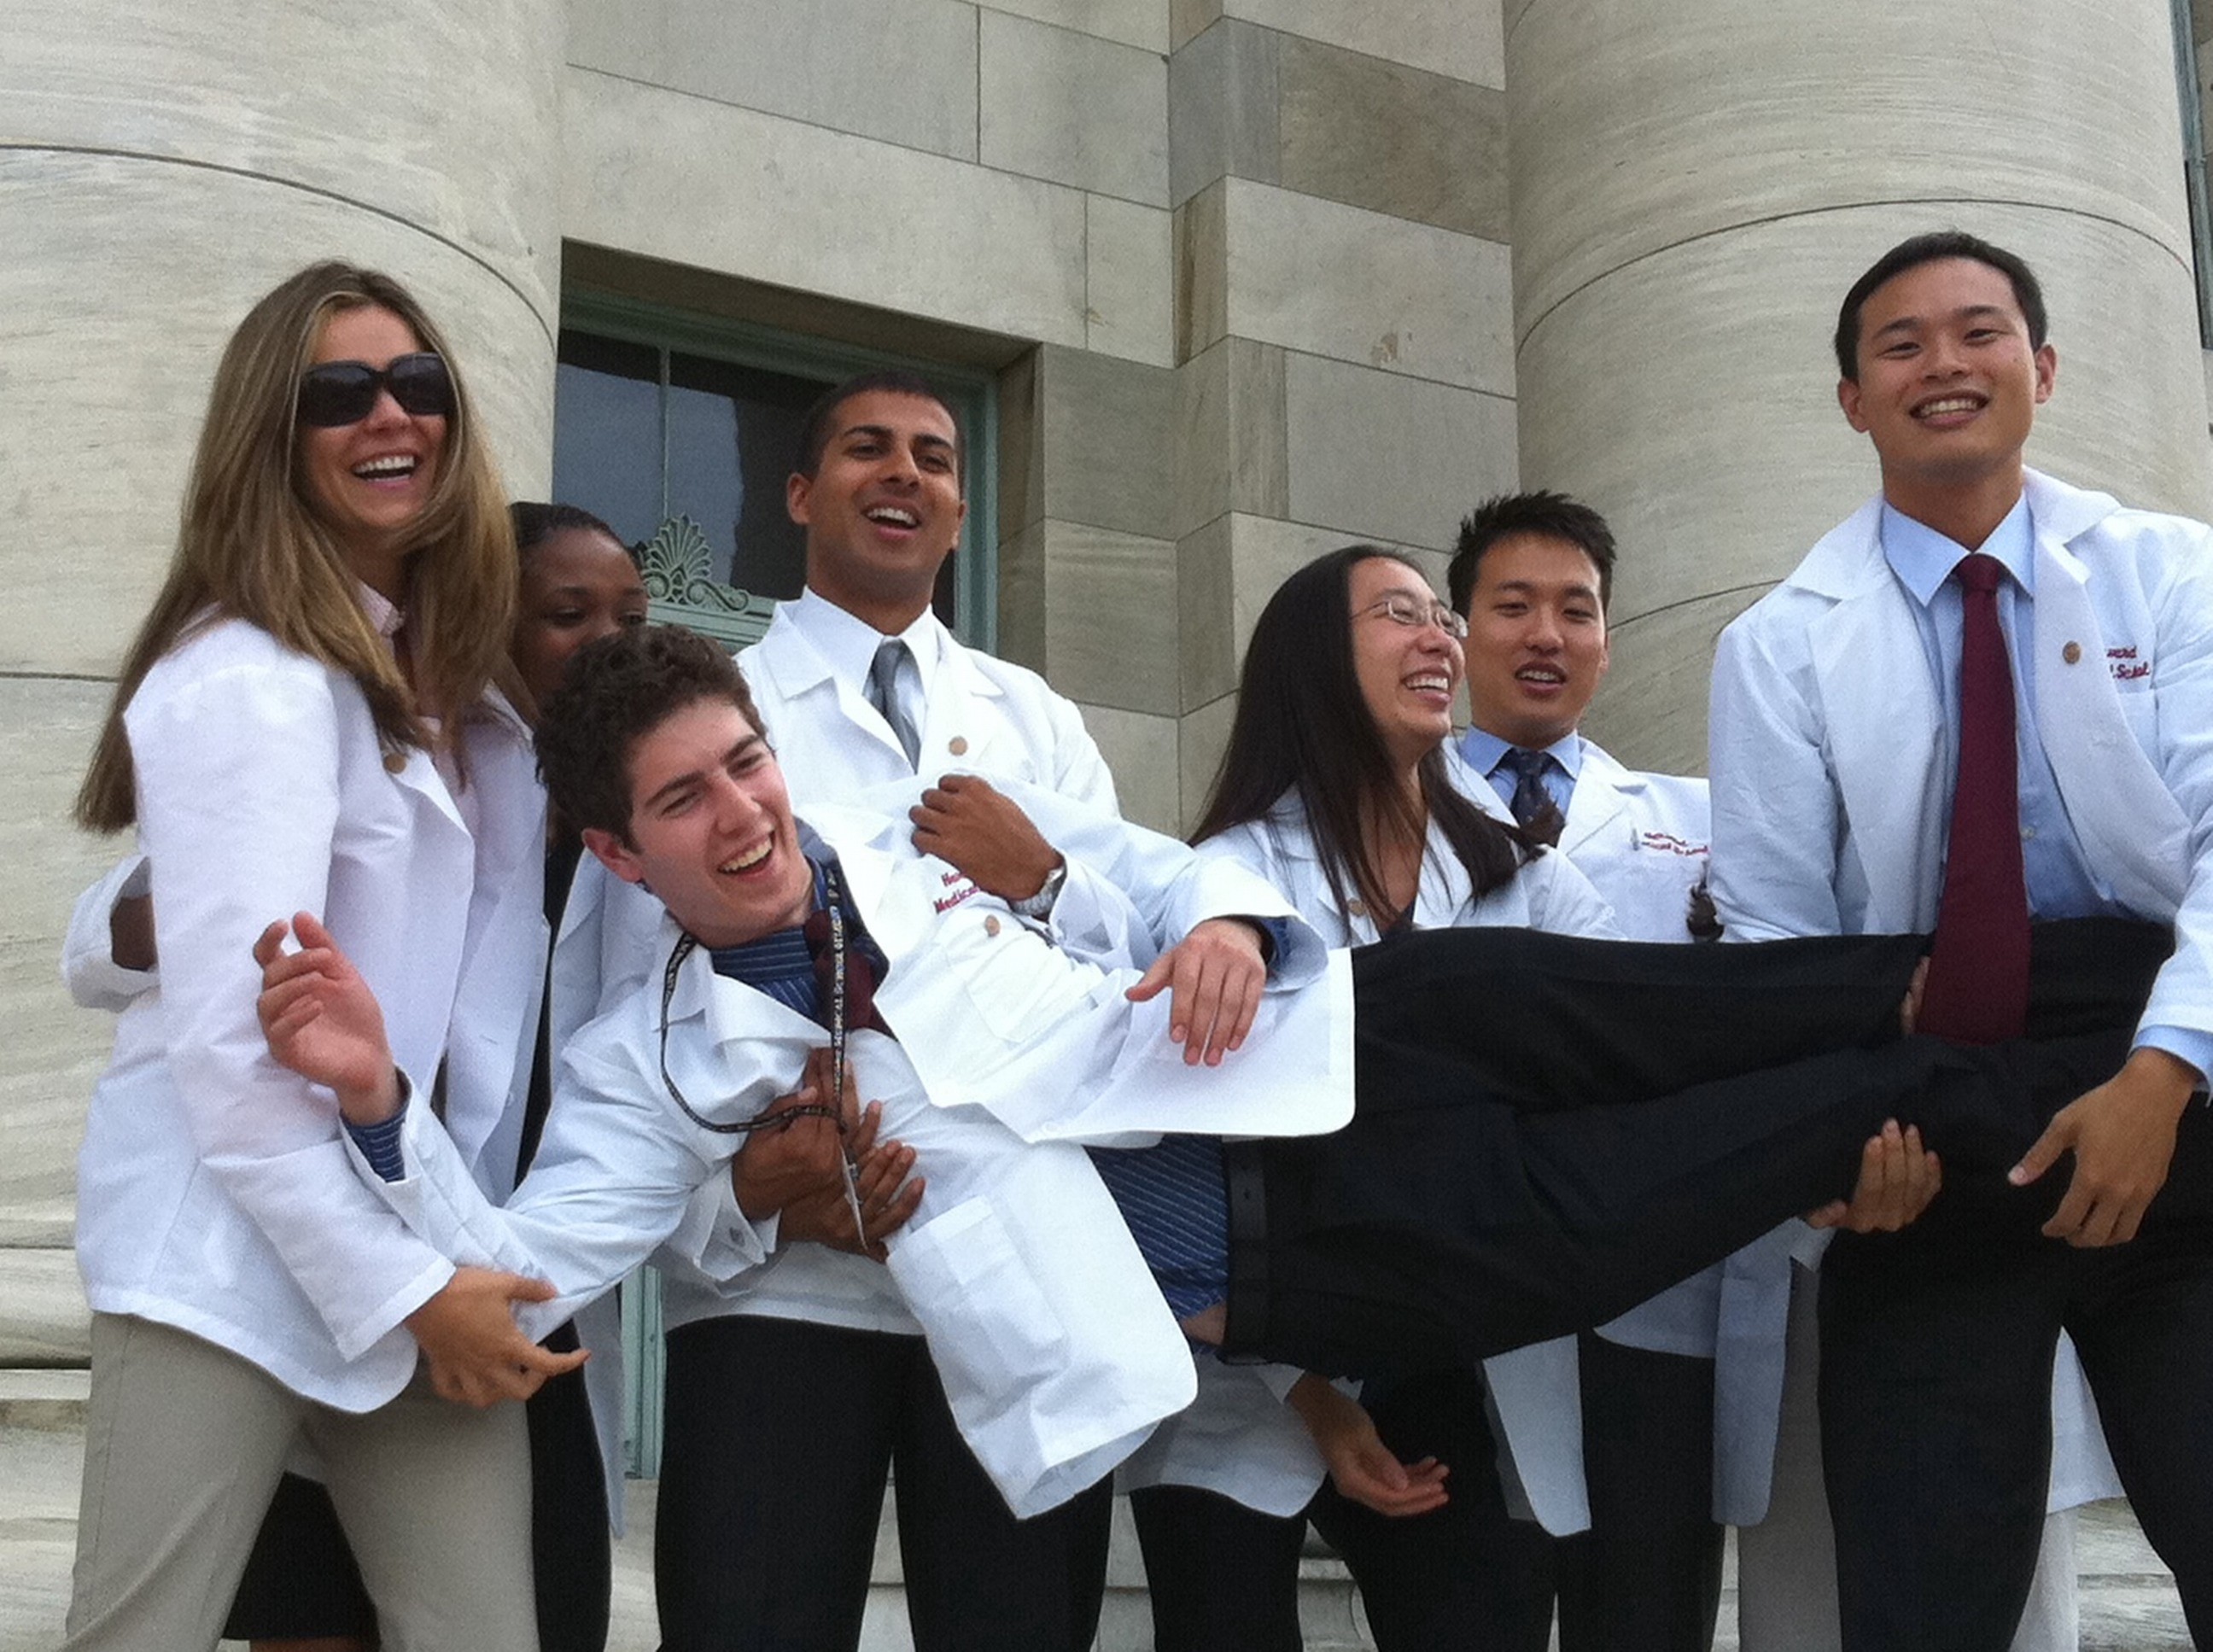 White Coat Ceremony | Elusions